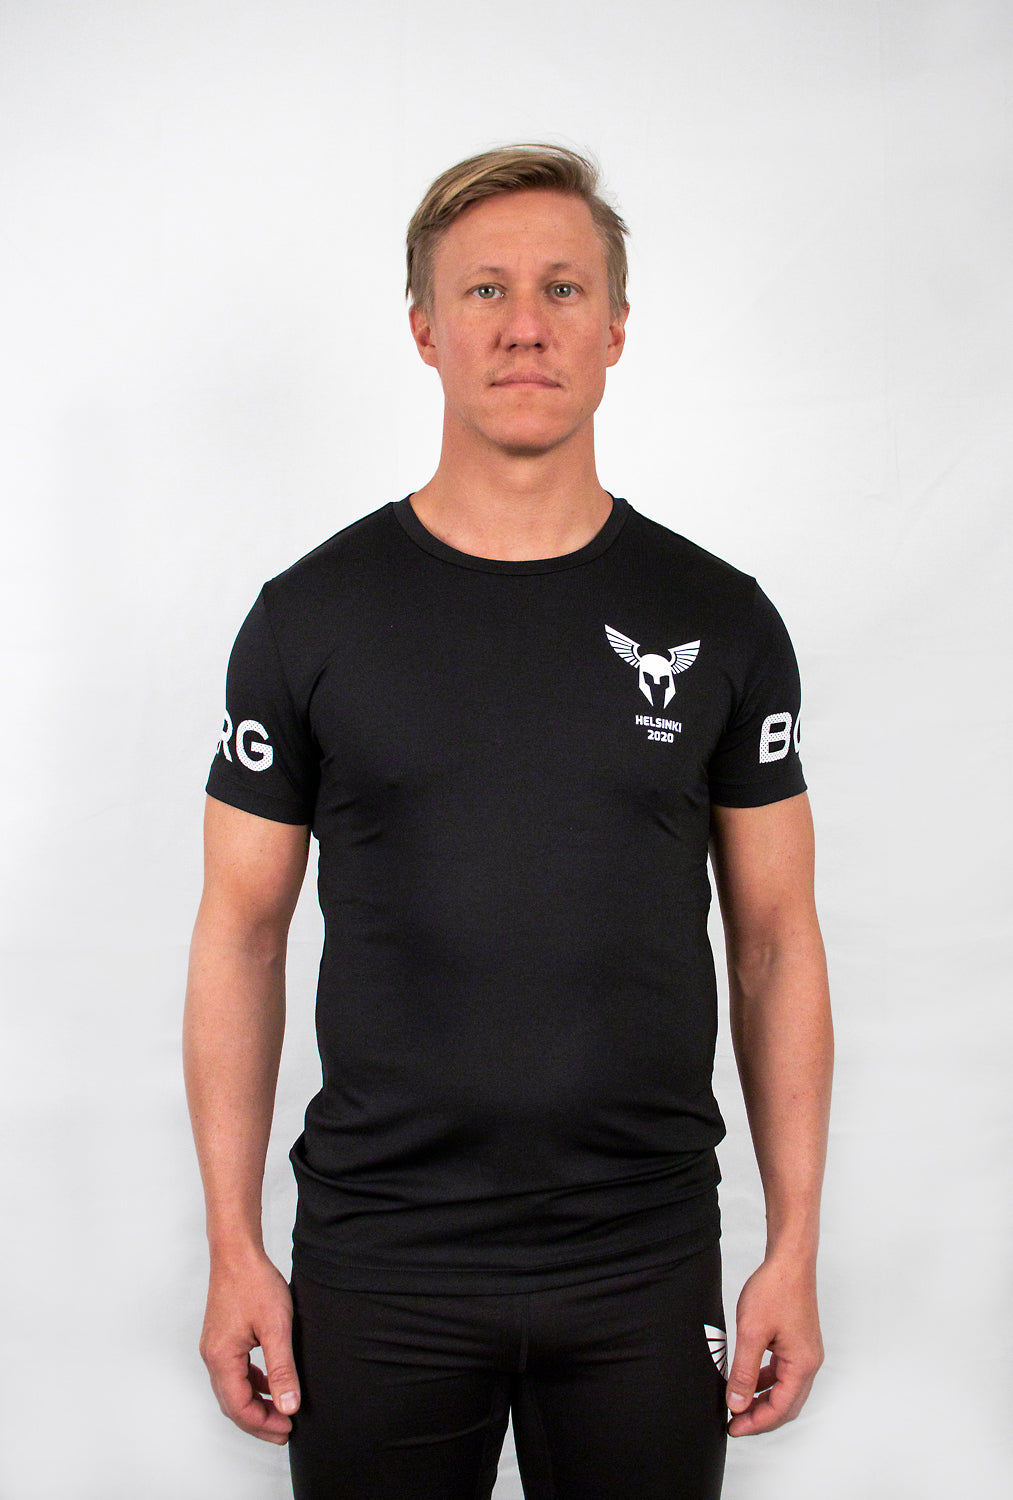 Men Helsinki race T-shirt 2020